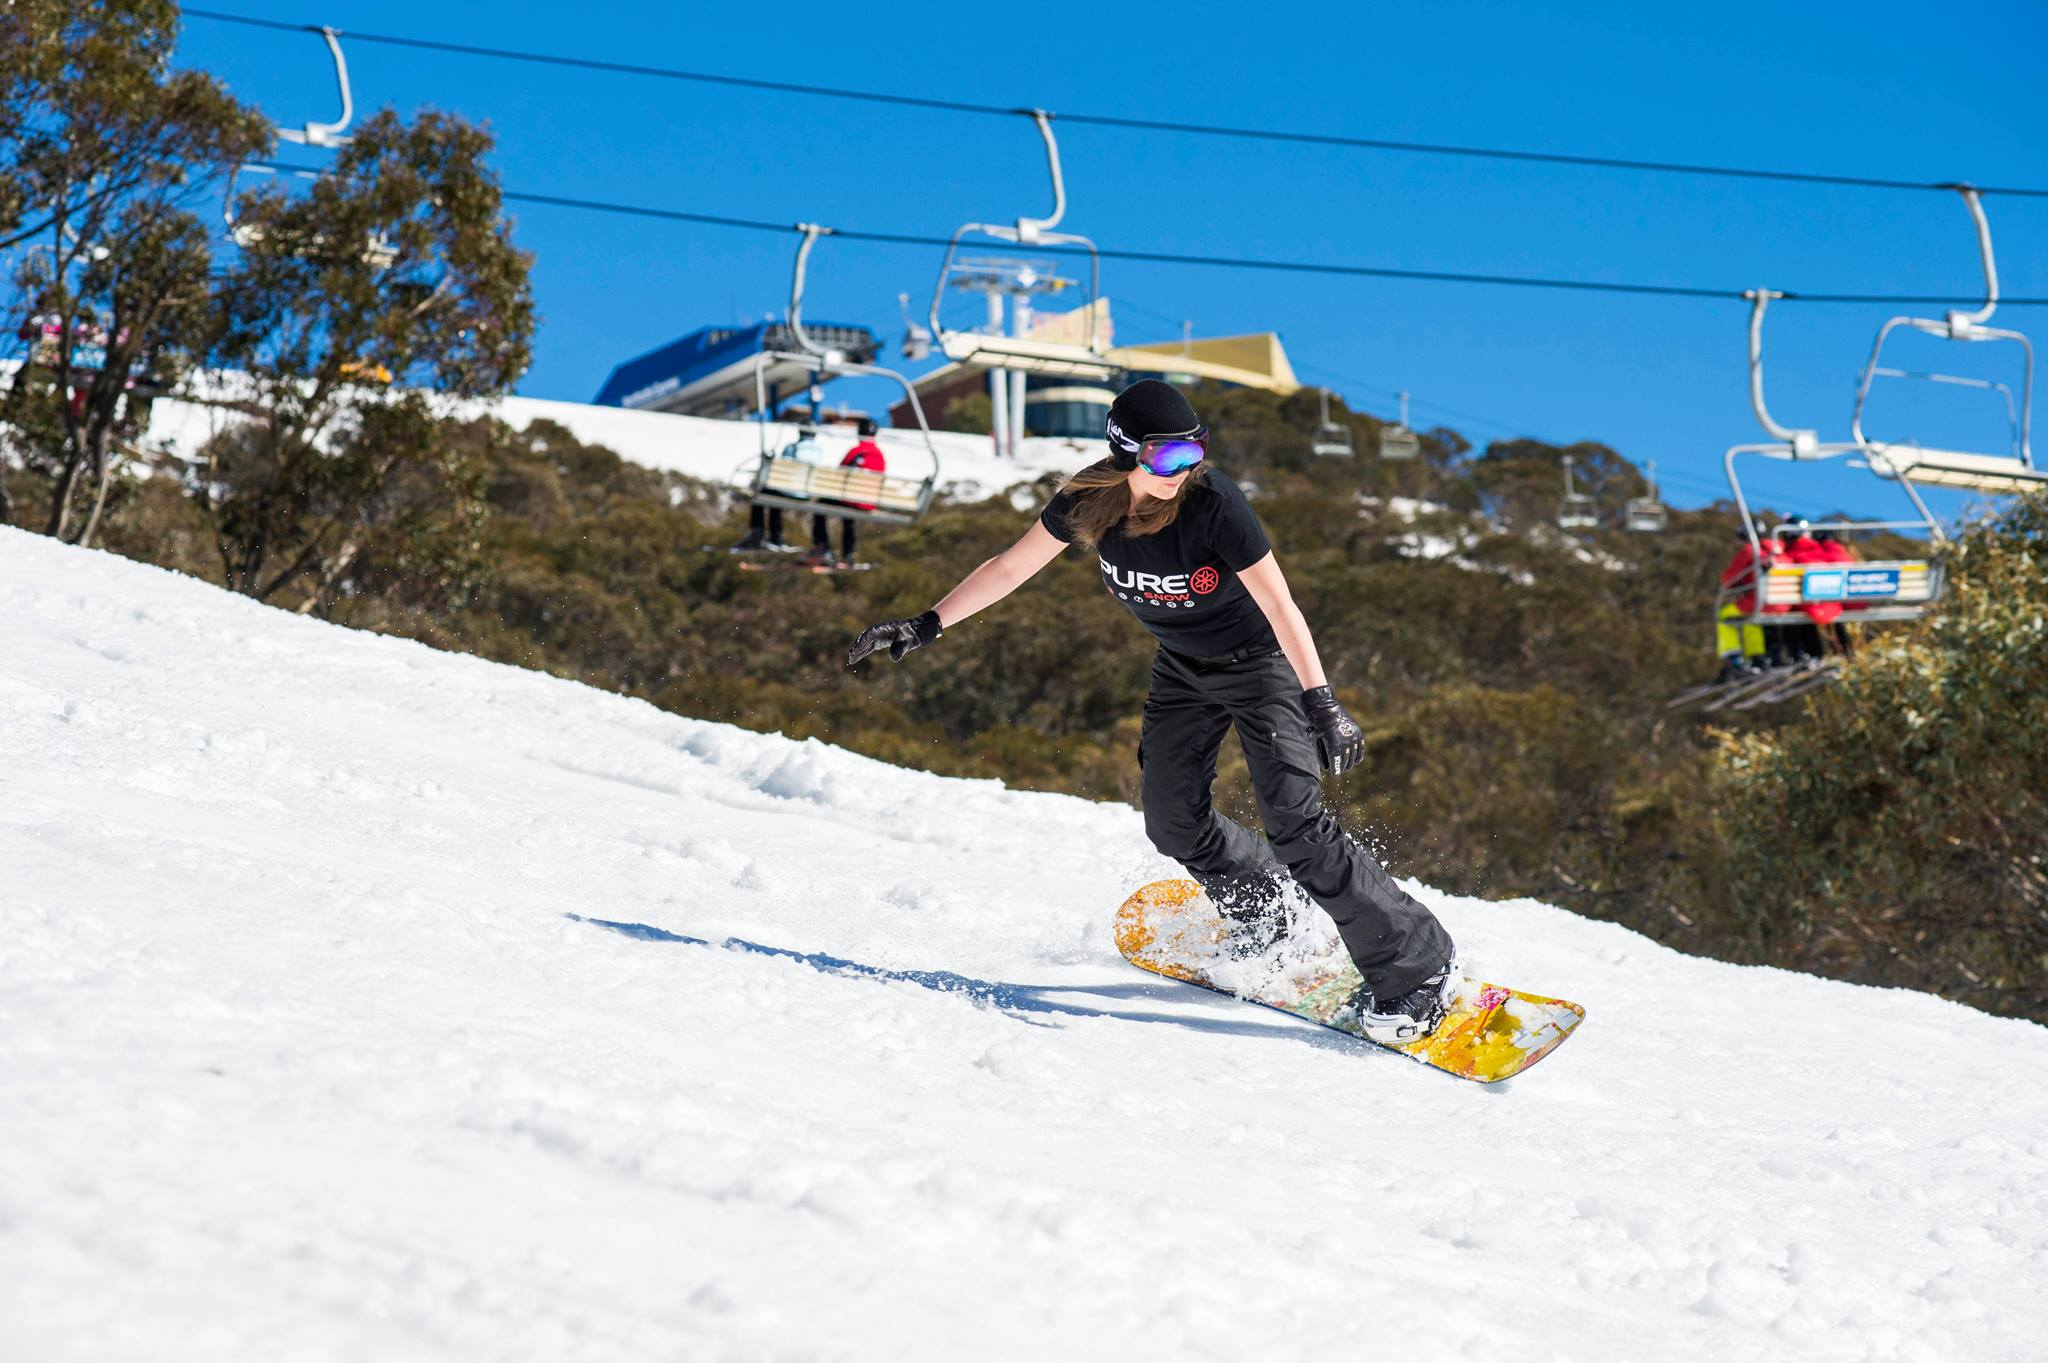 Mt Buller rider sporting our Pure Snow t-shirt